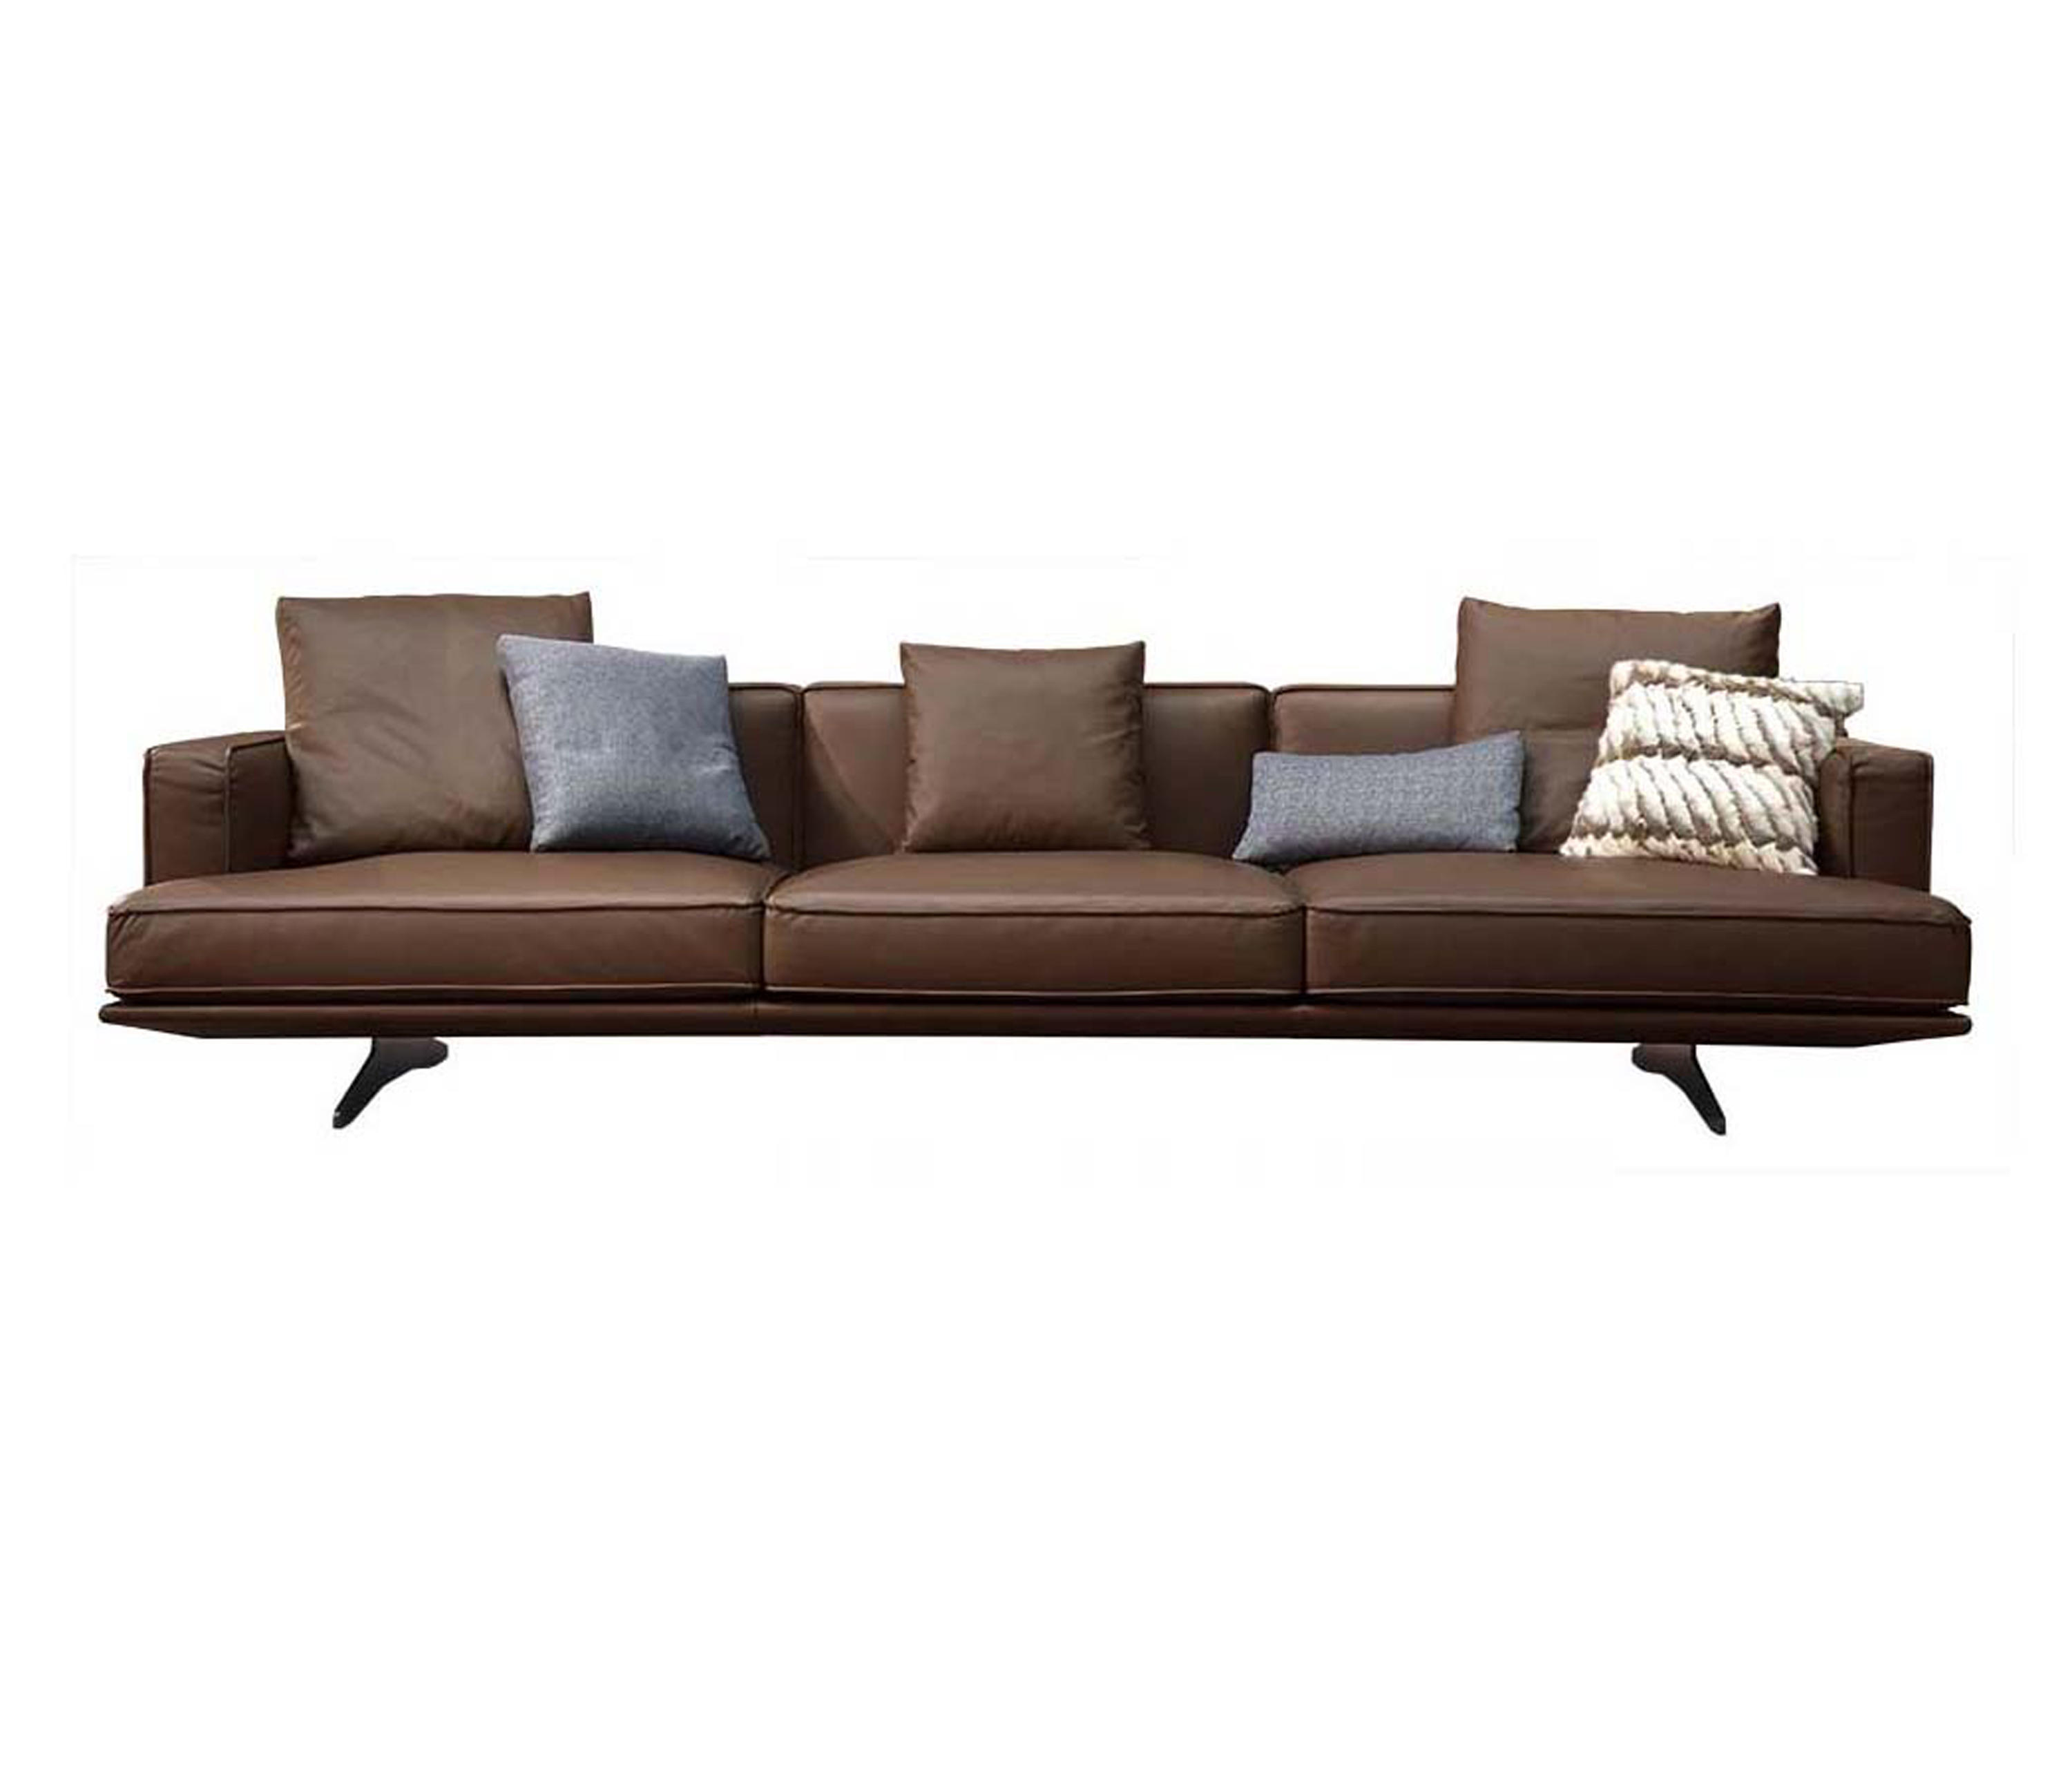 oliver sofa how to remove ballpoint pen mark from leather sofas jesse architonic